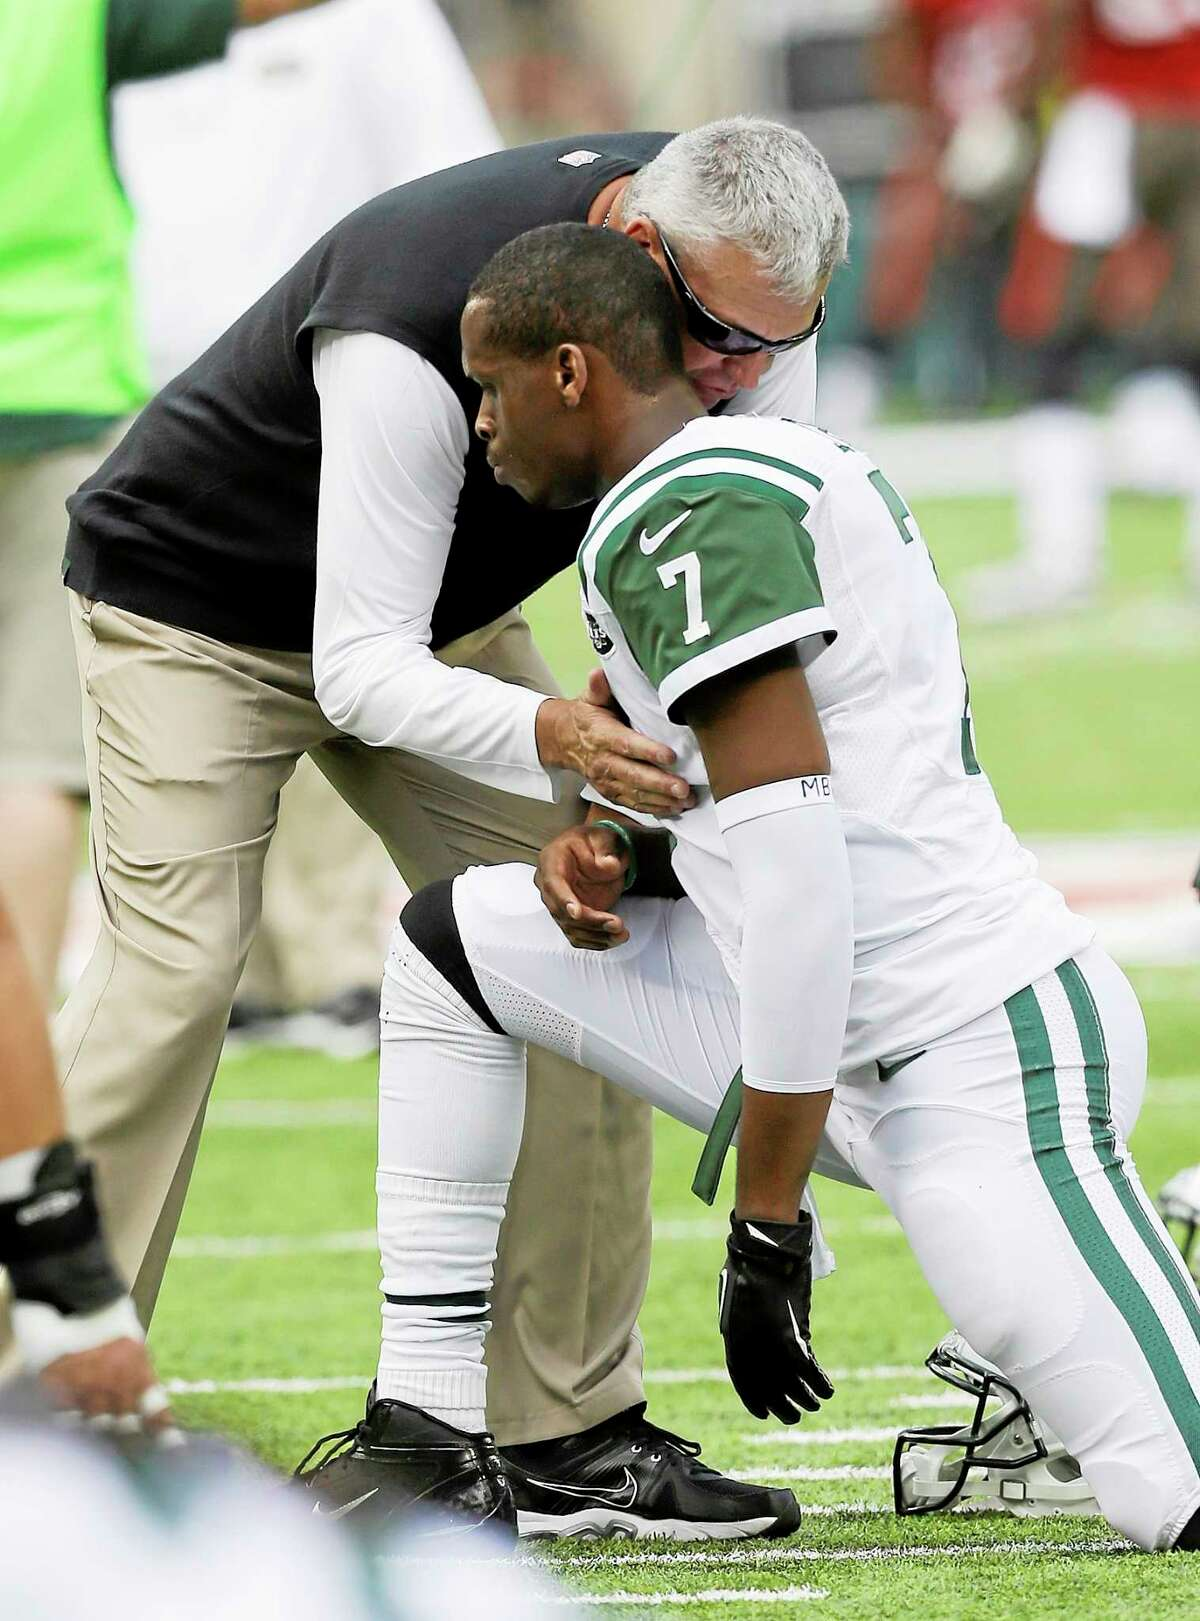 New York Jets coach Rex Ryan talks to quarterback Geno Smith before their game against the Tampa Bay Buccaneers Sunday in East Rutherford, N.J.